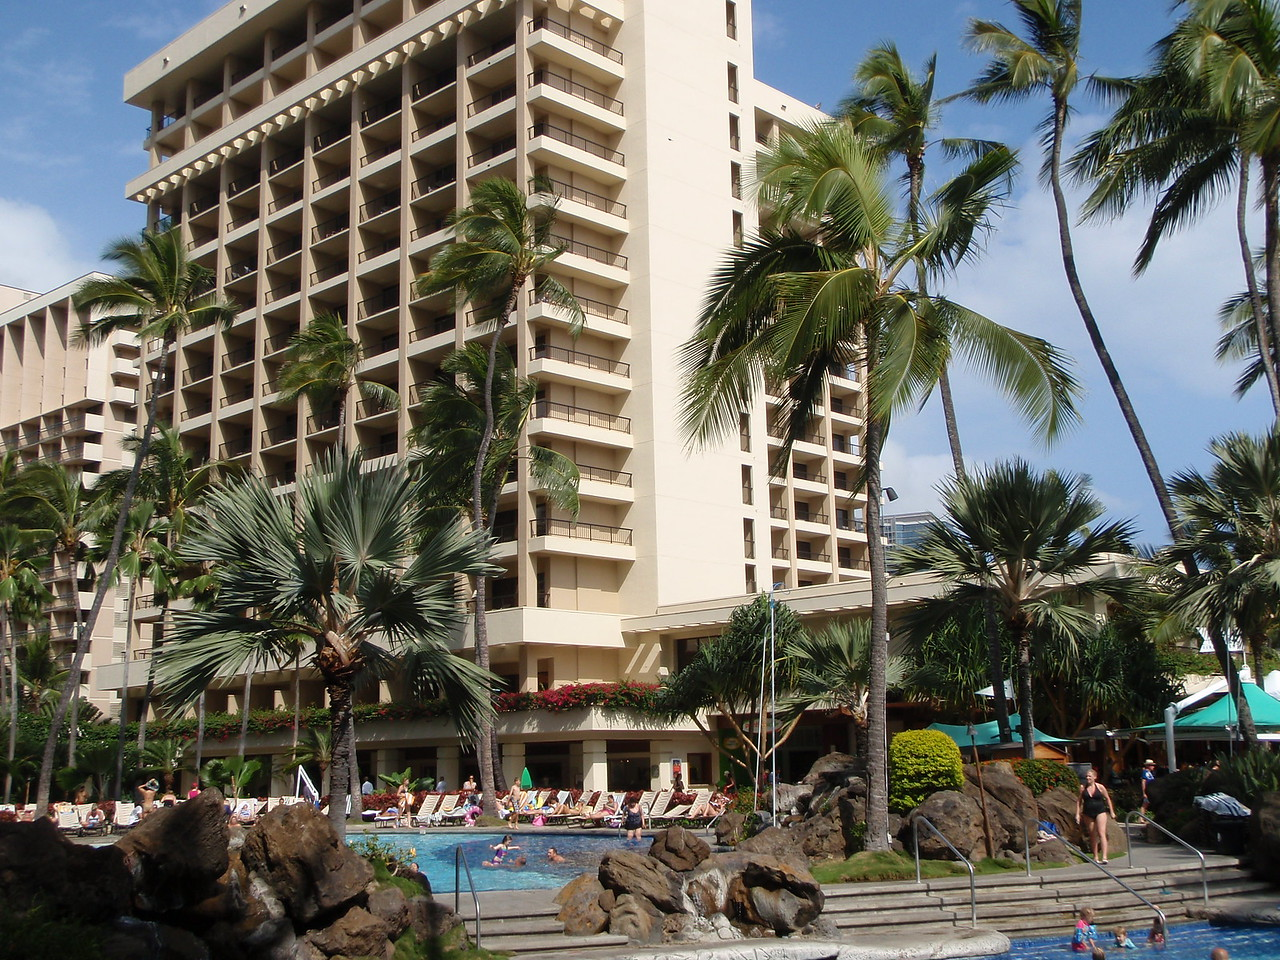 After settling into the room we explored the hotel grounds.  That's the Ali'i Tower.  Our room is on the far right side.  There are 7 towers and nearly 3000 rooms at the Hilton Hawaiian Village Resort.